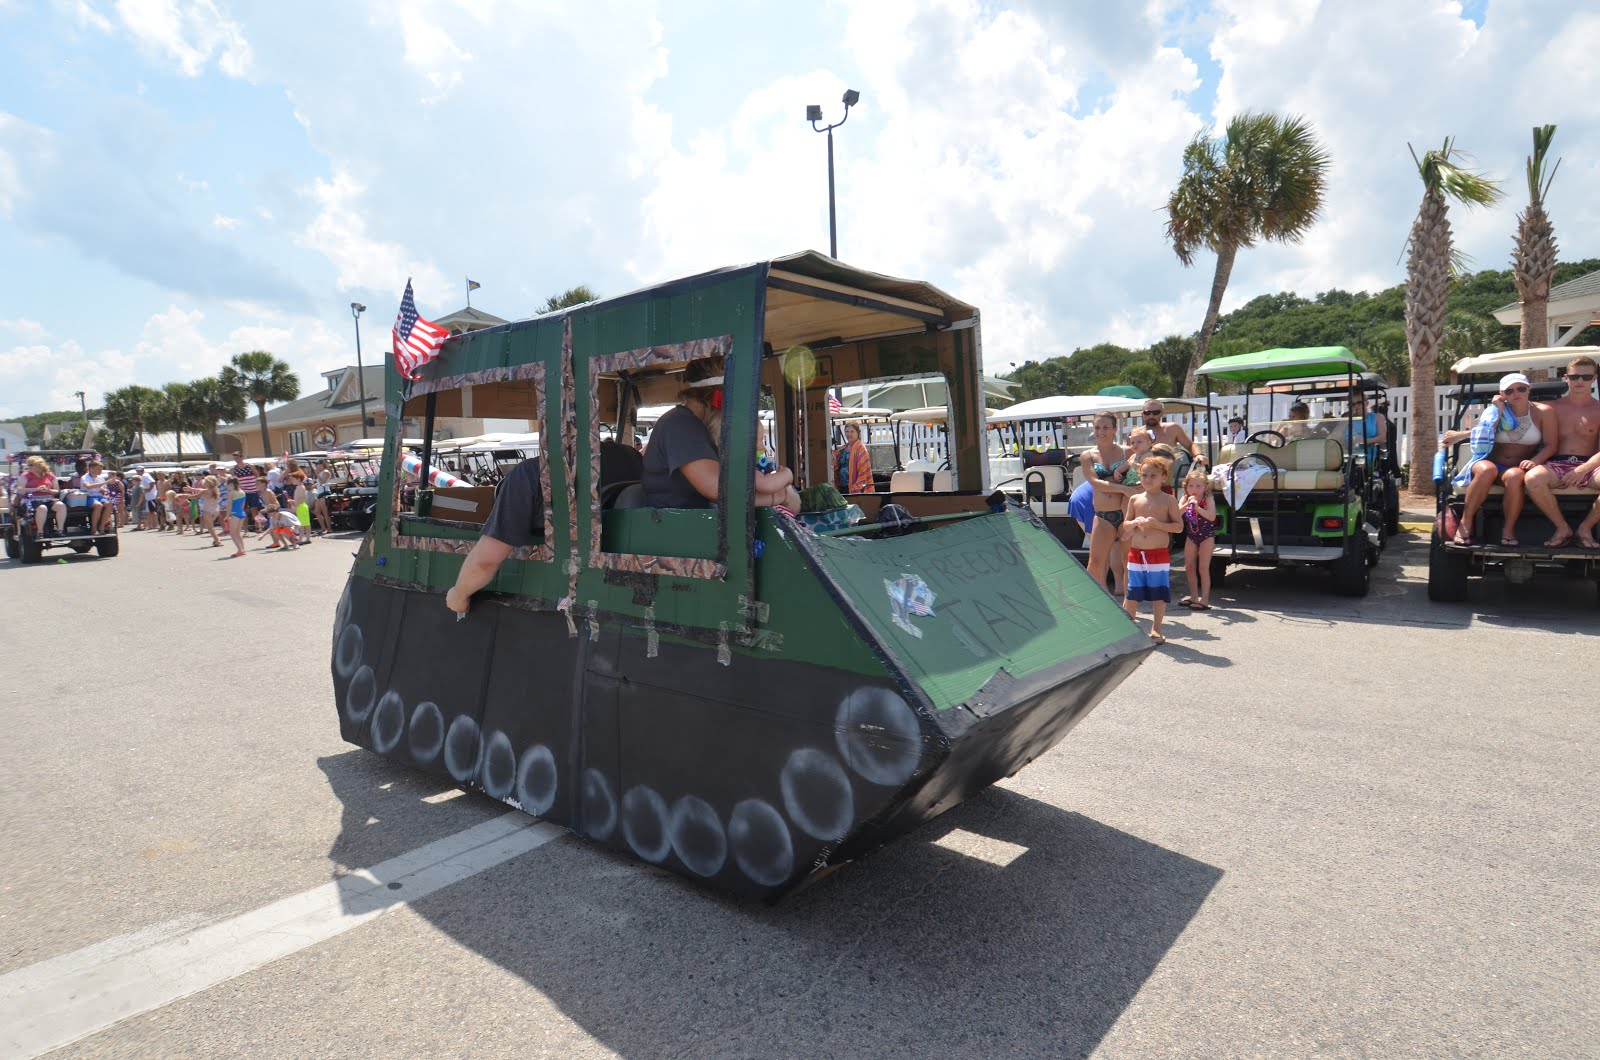 Ocean Lakes: Fun on the Fourth   How to make the most of your July on golf decorating ideas, cart for mardi gras float ideas, parade theme ideas, pig roast ideas, golf carts like trucks, parade of tables ideas, golf decoration for birthday party, parade truck decorating ideas, golf carts beach life, 4 wheeler parade ideas, golf club display ideas, wheelchair parade ideas, rosa parks poster design ideas,